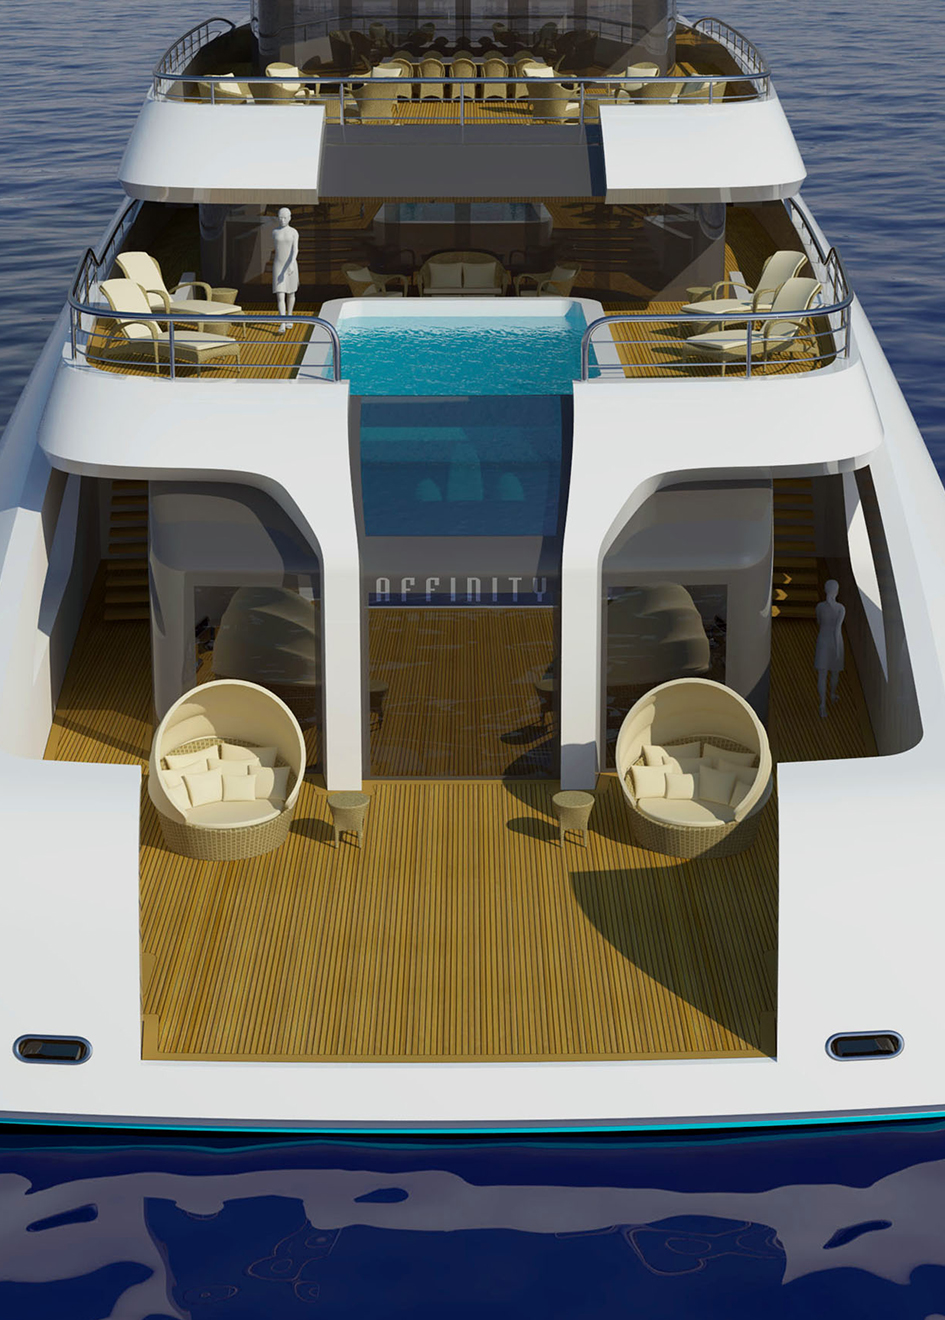 aft-view-of-the-a-group-superyacht-concept-project-affinity